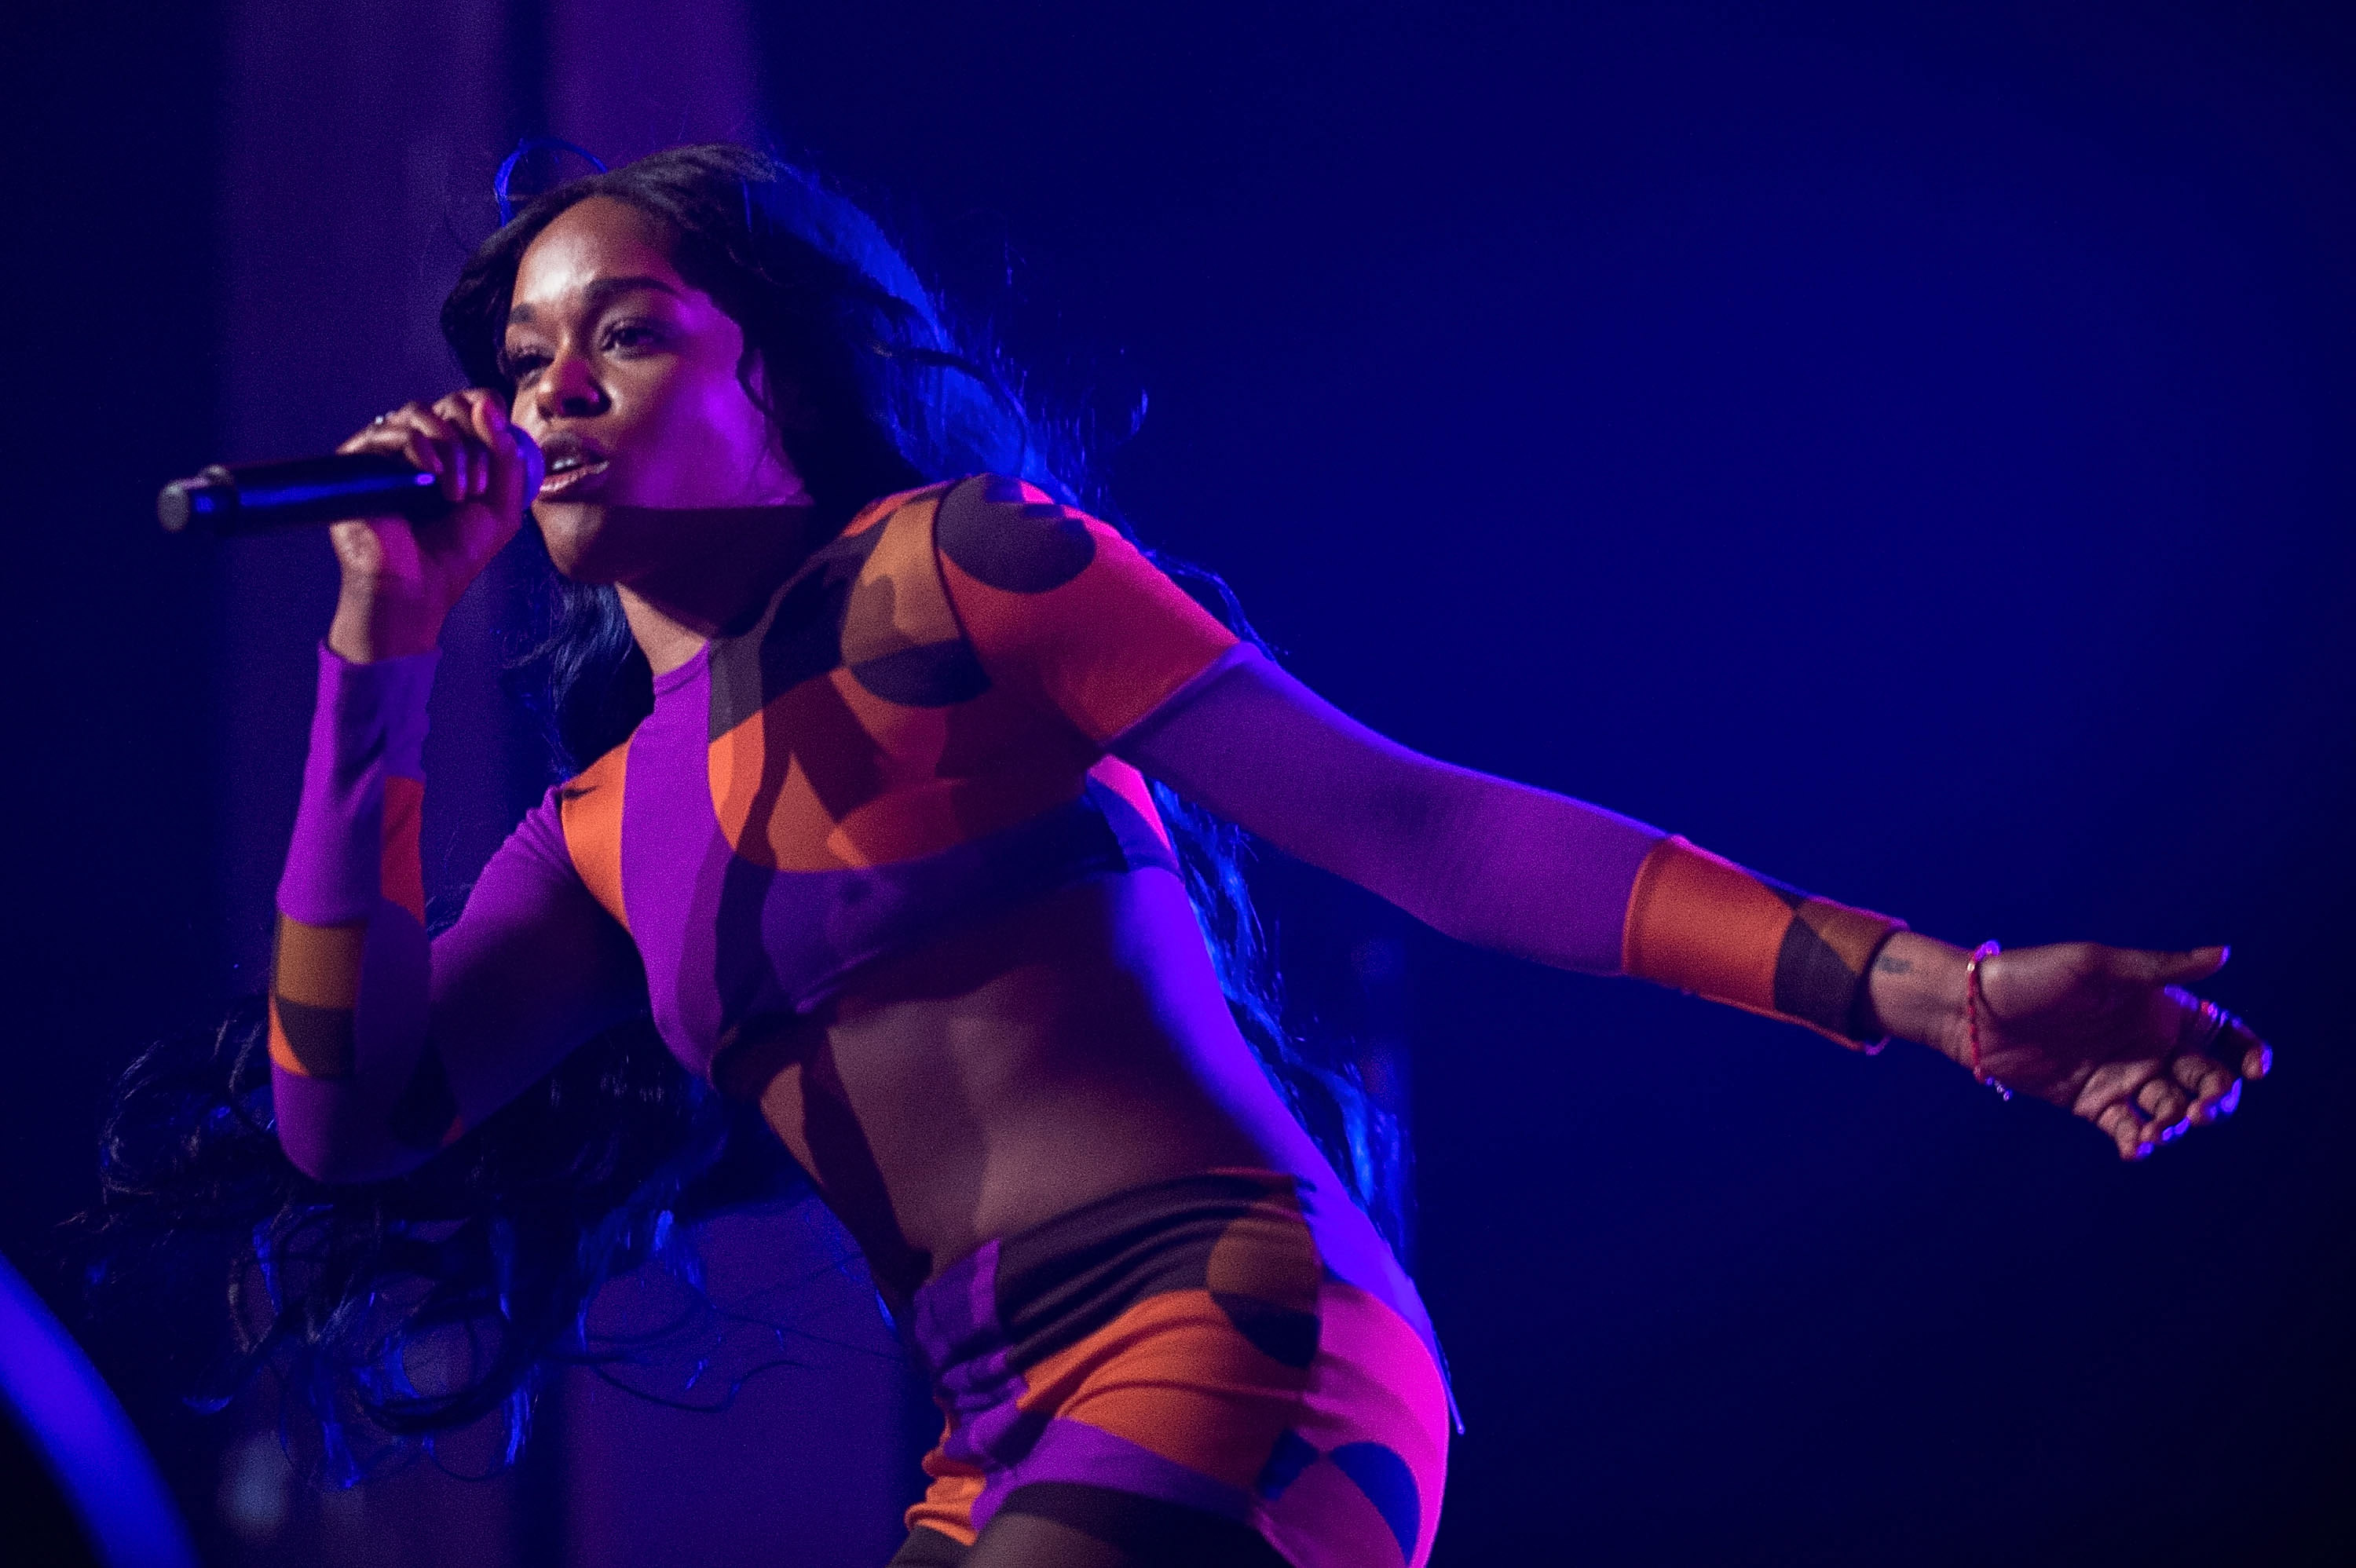 Azealia Banks performs during Splendour in the Grass on July 25, 2015 in Byron Bay, Australia. (Photo by Cassandra Hannagan/Getty)